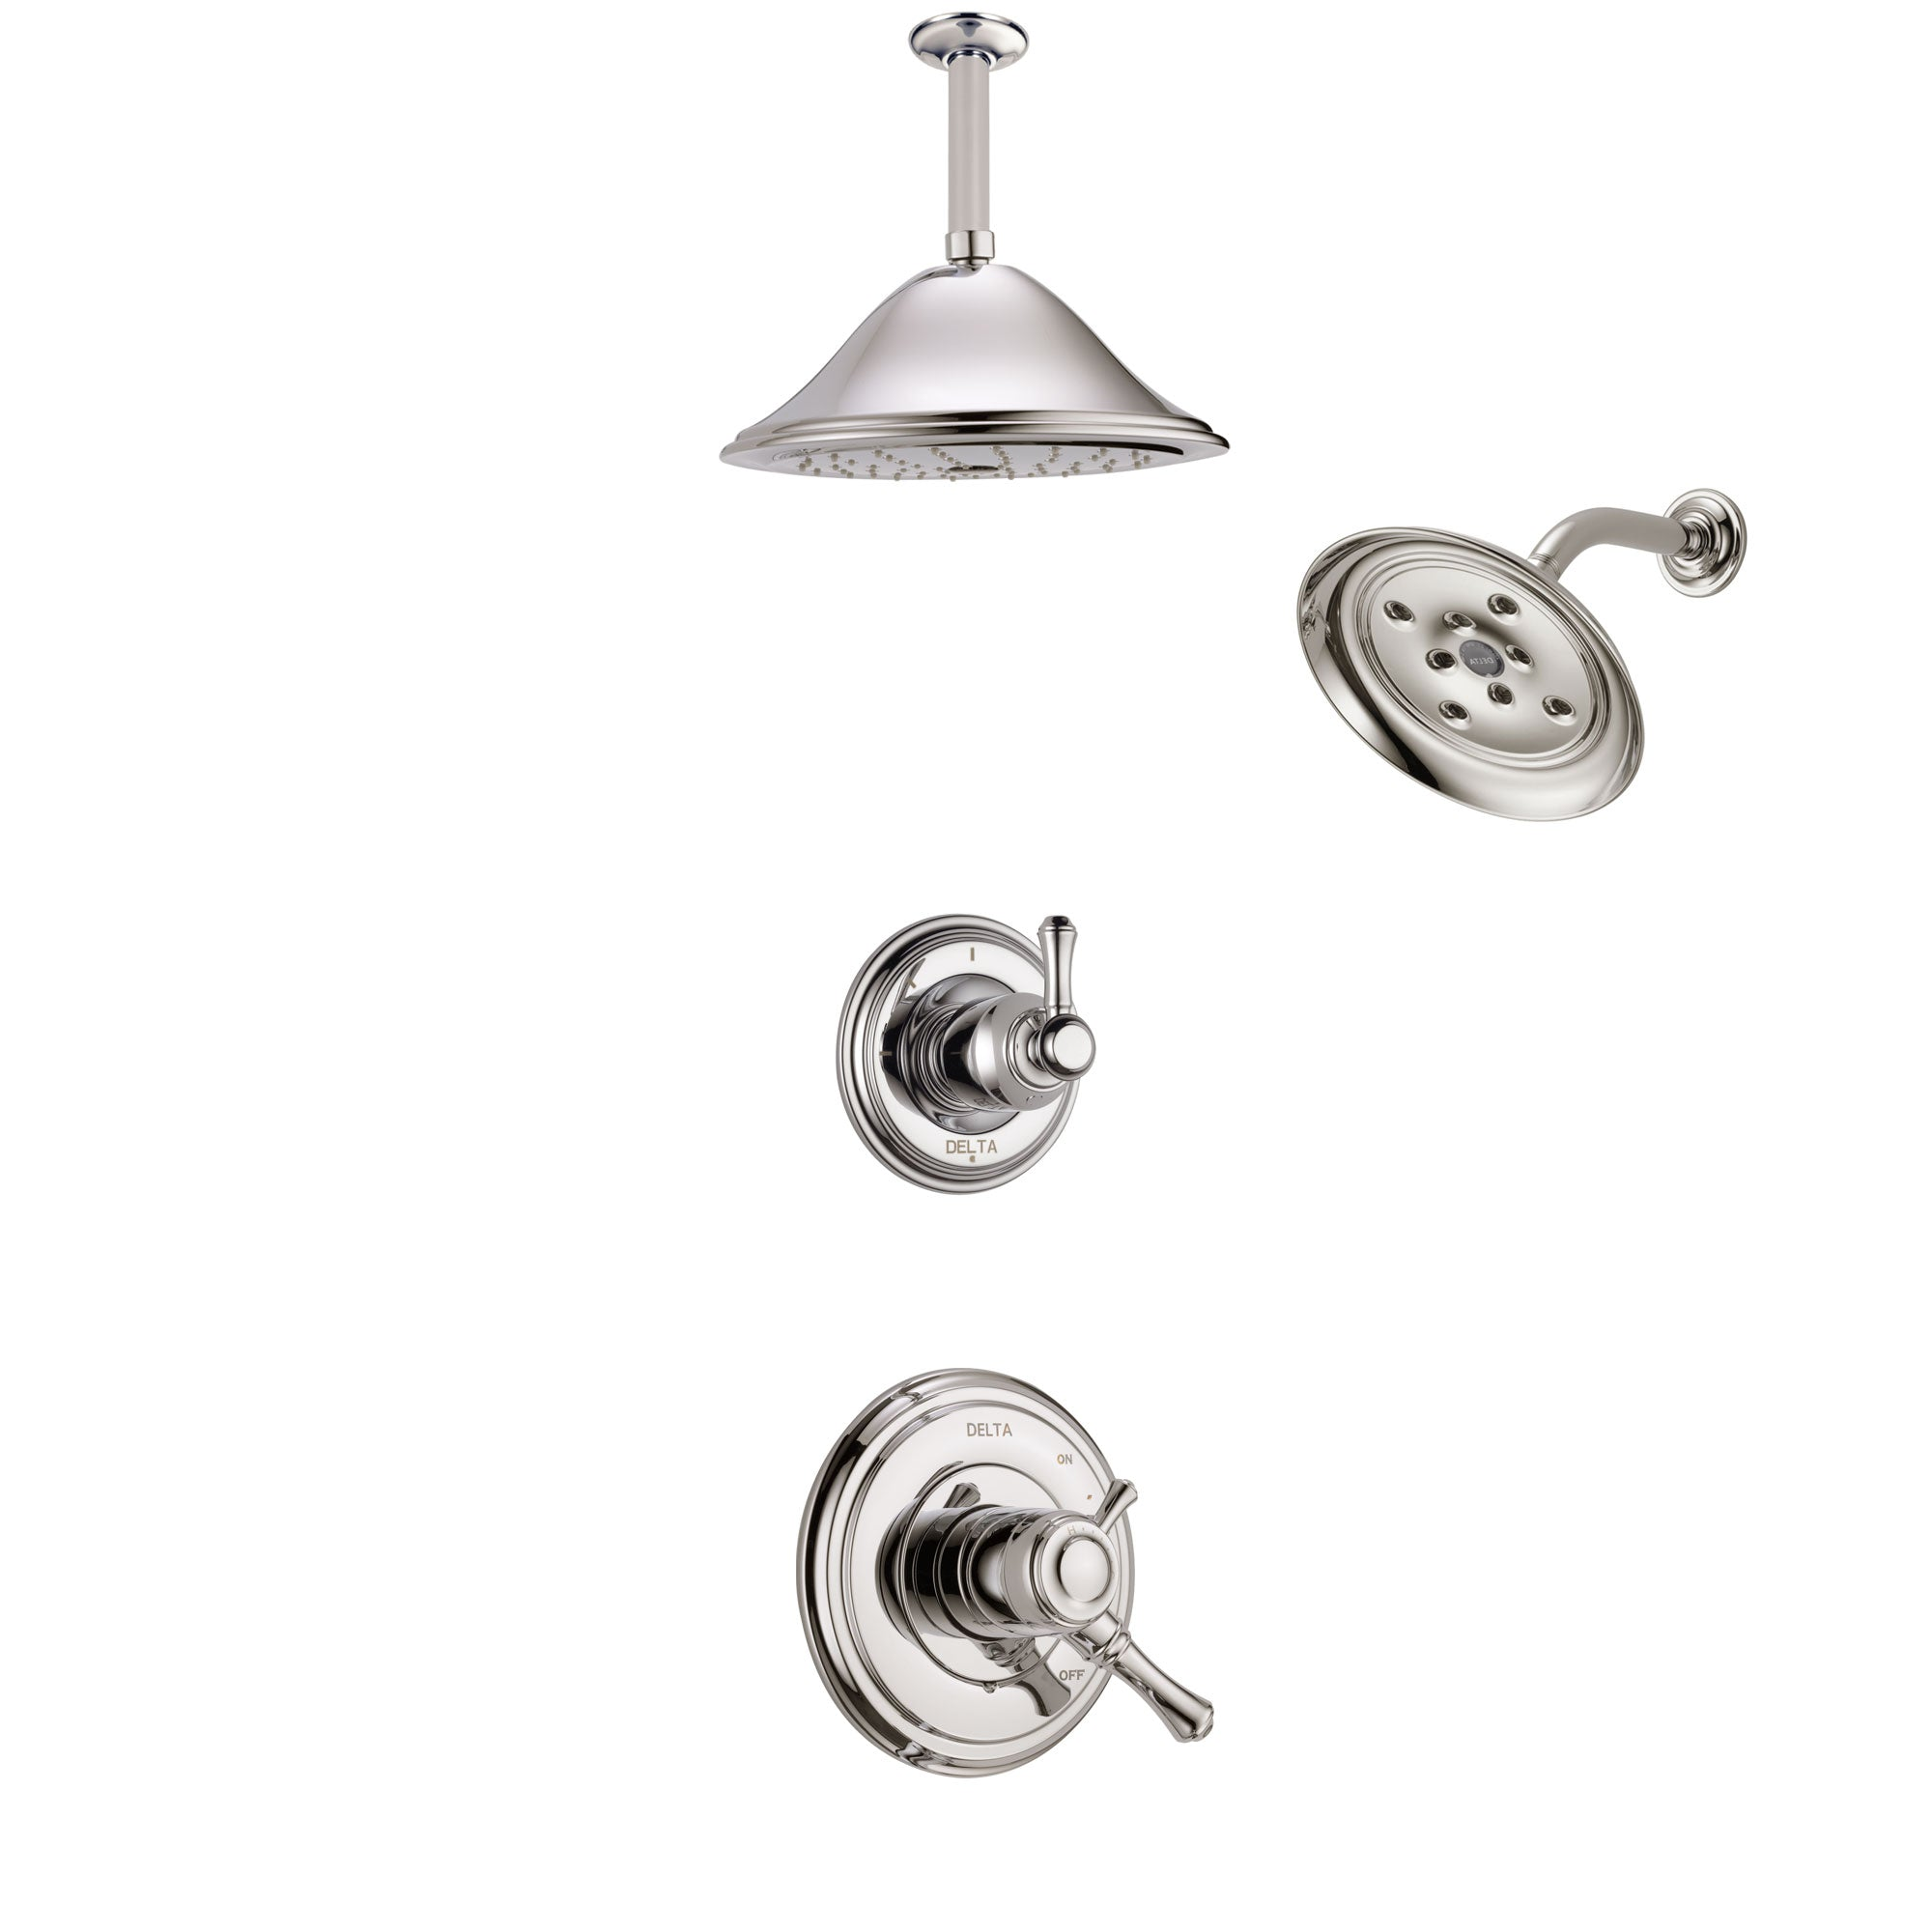 Delta Cassidy Polished Nickel Finish Shower System with Dual Control Handle, 3-Setting Diverter, Showerhead, and Ceiling Mount Showerhead SS1797PN7